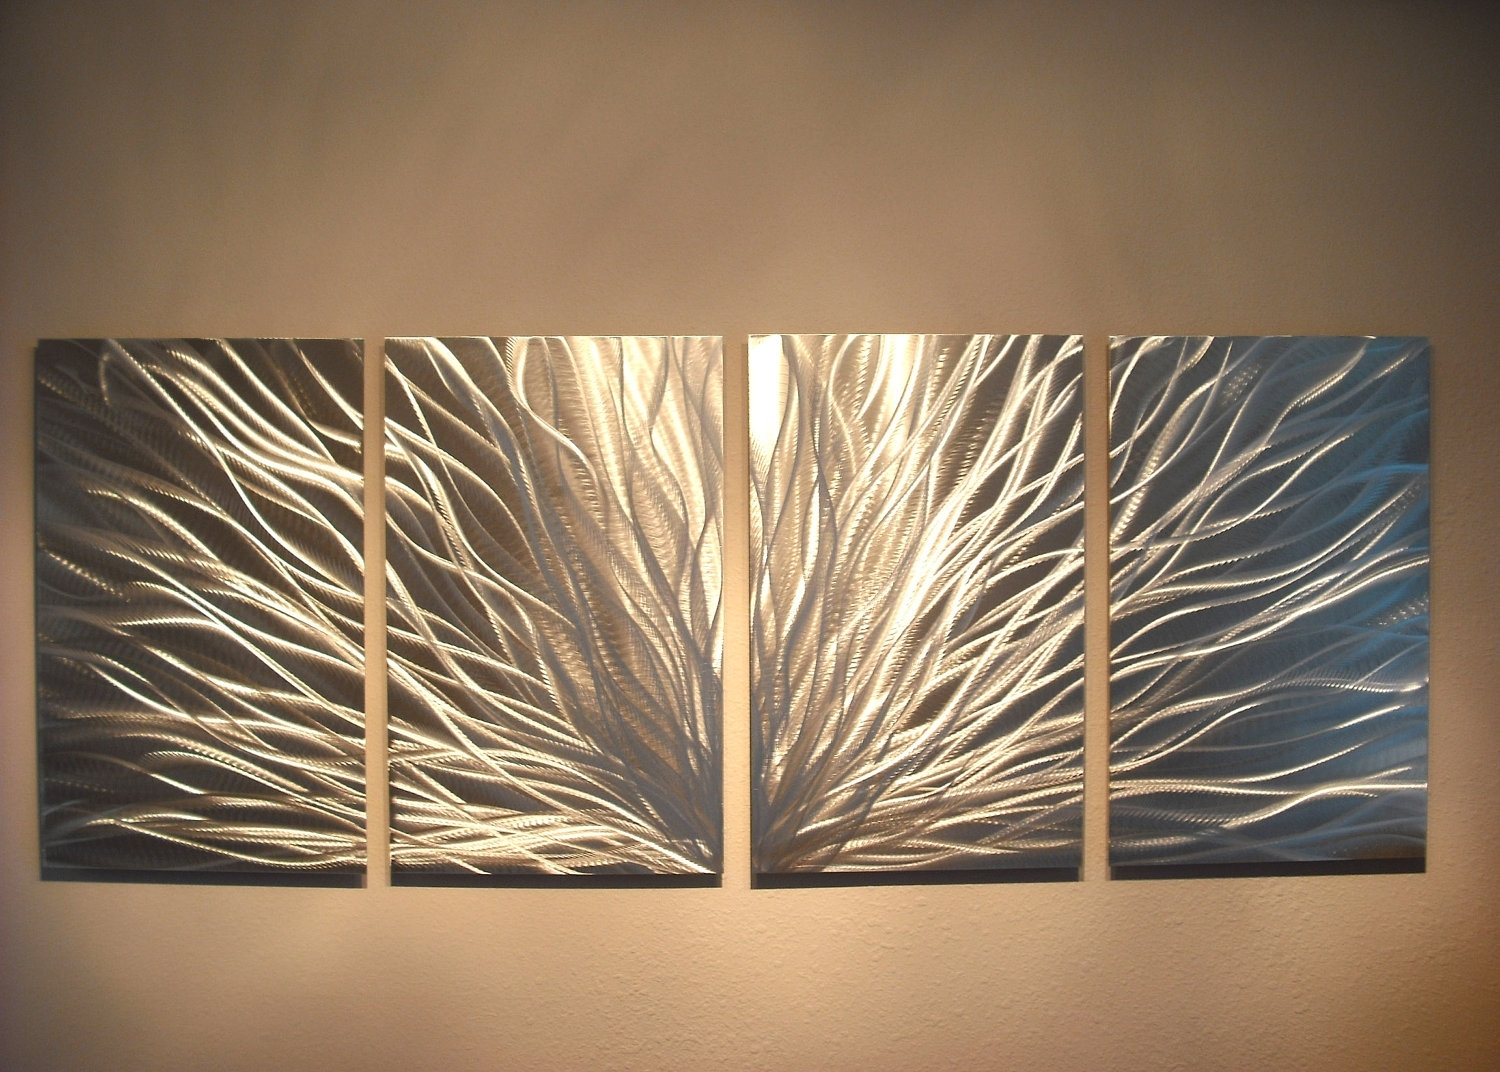 Radiance – Abstract Metal Wall Art Contemporary Modern Decor In Current Decorative Wall Art (Gallery 1 of 20)